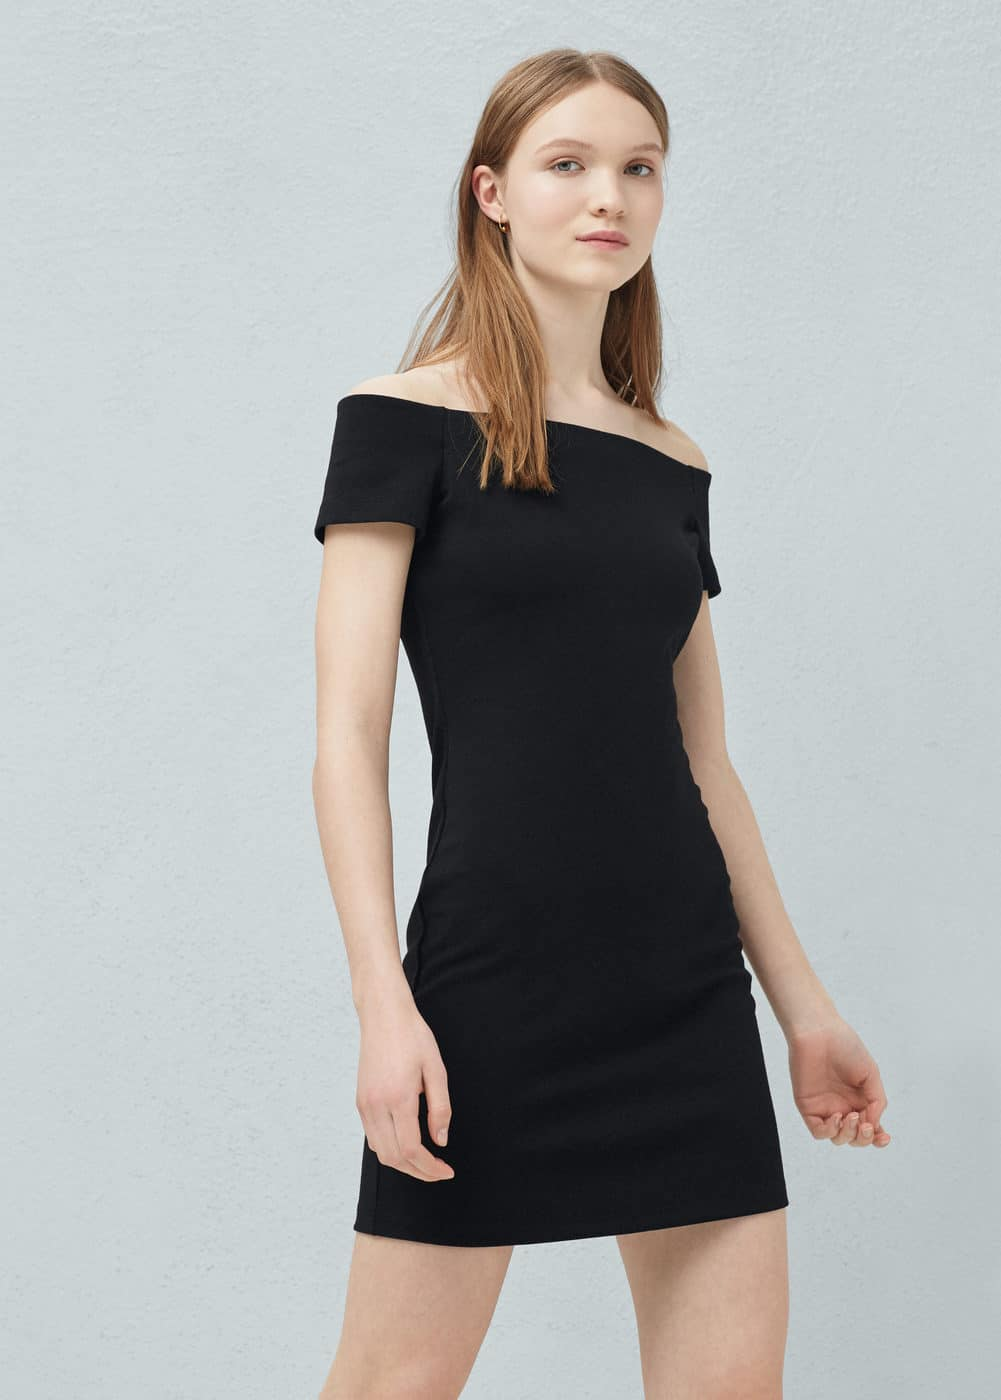 Simple Home Clothing Women Clothing Dresses MANGO Dresses